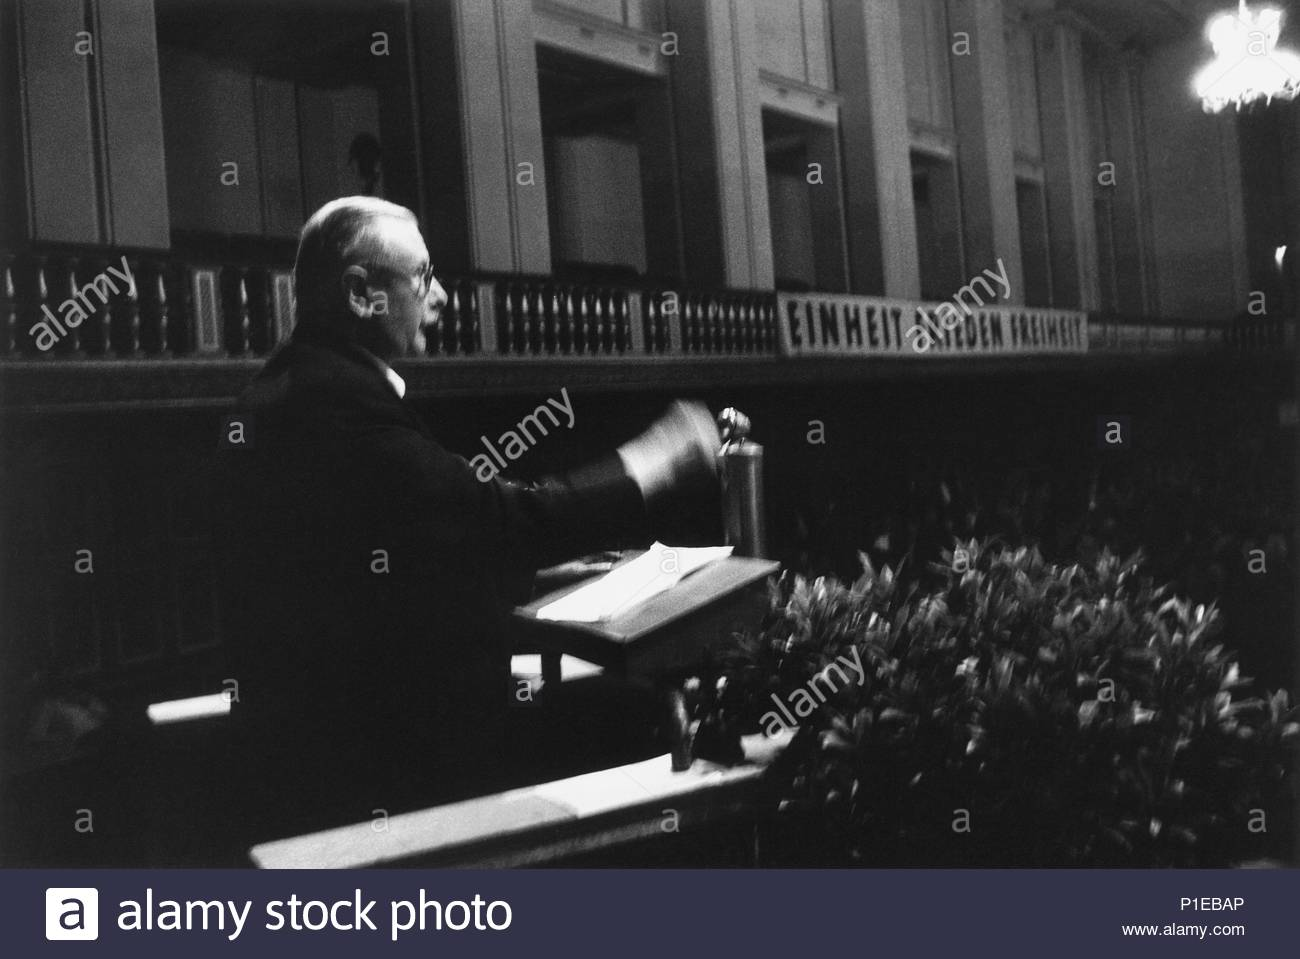 West-German elections 1953.   Chancellor Konrad Adenauer's Christian Democratic Union (CDU) won a majority.   Josef Wirth, Chancellor of the German Reich in the late Twenties, speaking at a rally of his short-lived Bund der Deutschen. Location: Staatliche Kunstsammlungen, Gruenes Gewoelbe, Dresden, Germany. - Stock Image